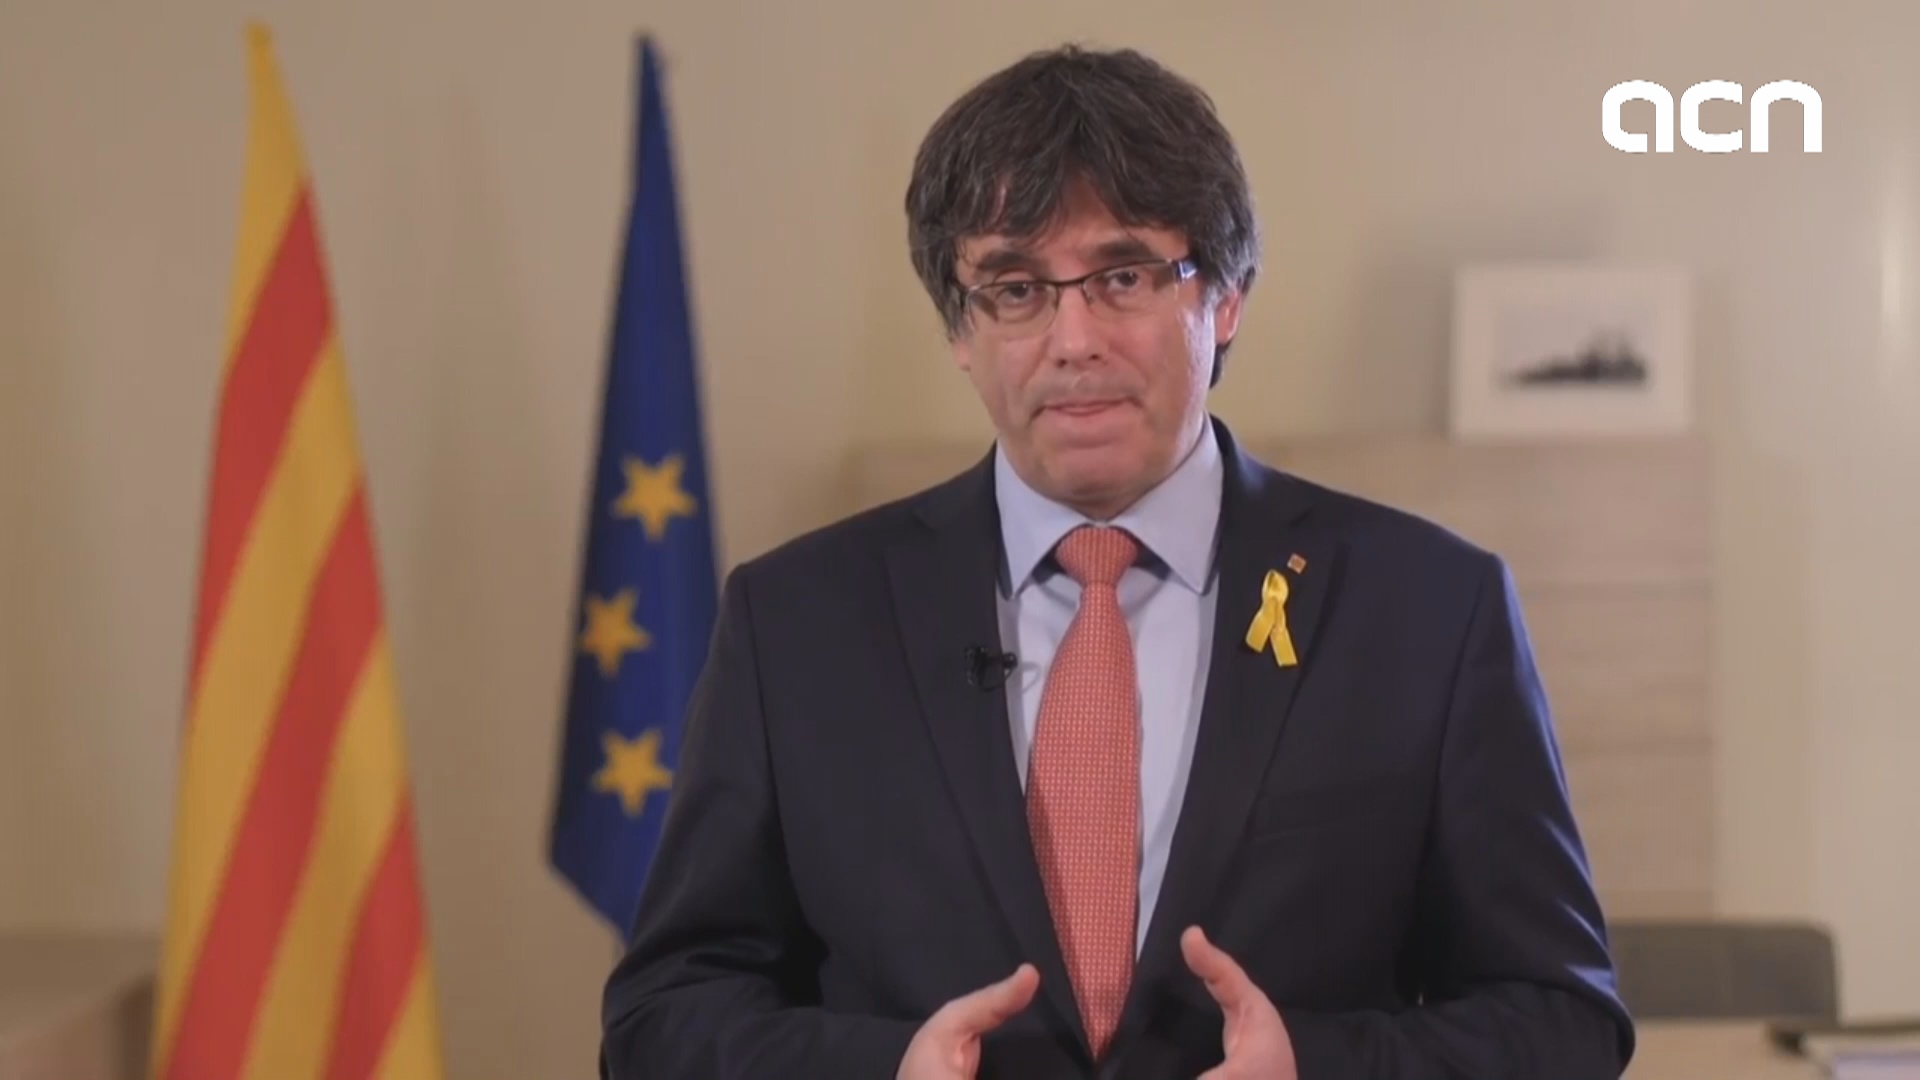 Carles Puigdemont steps aside as presidential candidate